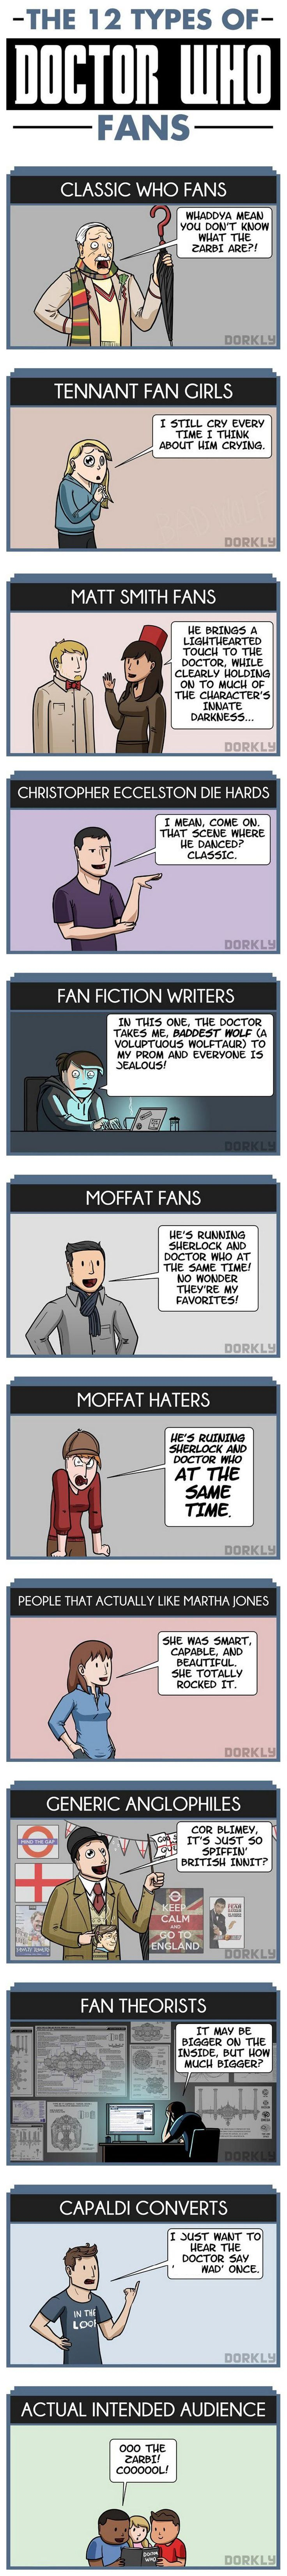 The 12 Types of Doctor Who Fans -- haha so I fall under Matt Smith fans, Moffat fans (sorta - DW is not always strong writing-wise, but still a fave), people that actually like Martha Jones, generic Anglophiles and fan theorists... I have also become a Capaldi convert - he's so sherlock.